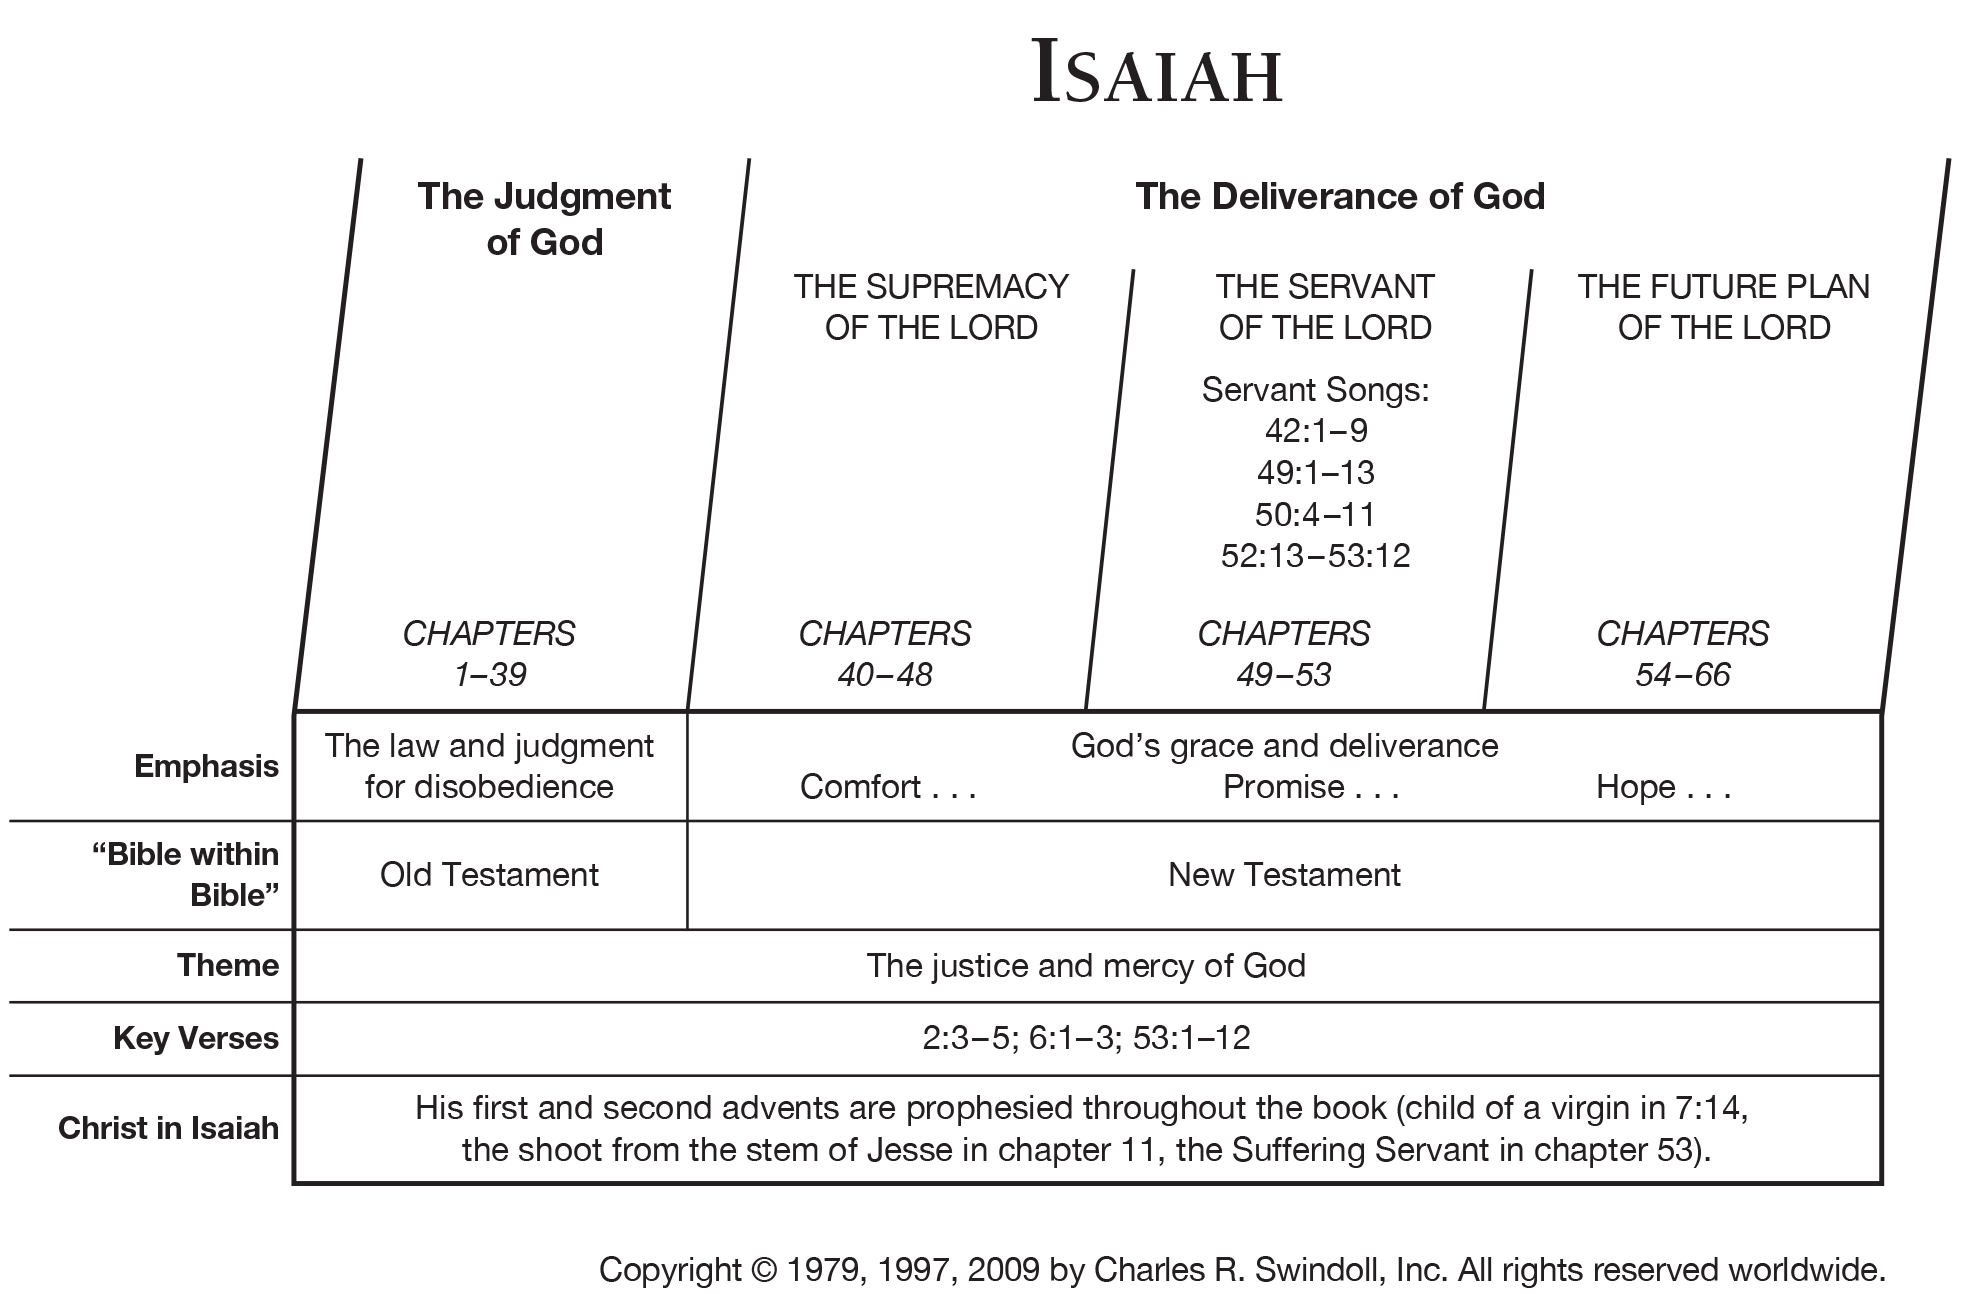 Book Of Isaiah Overview